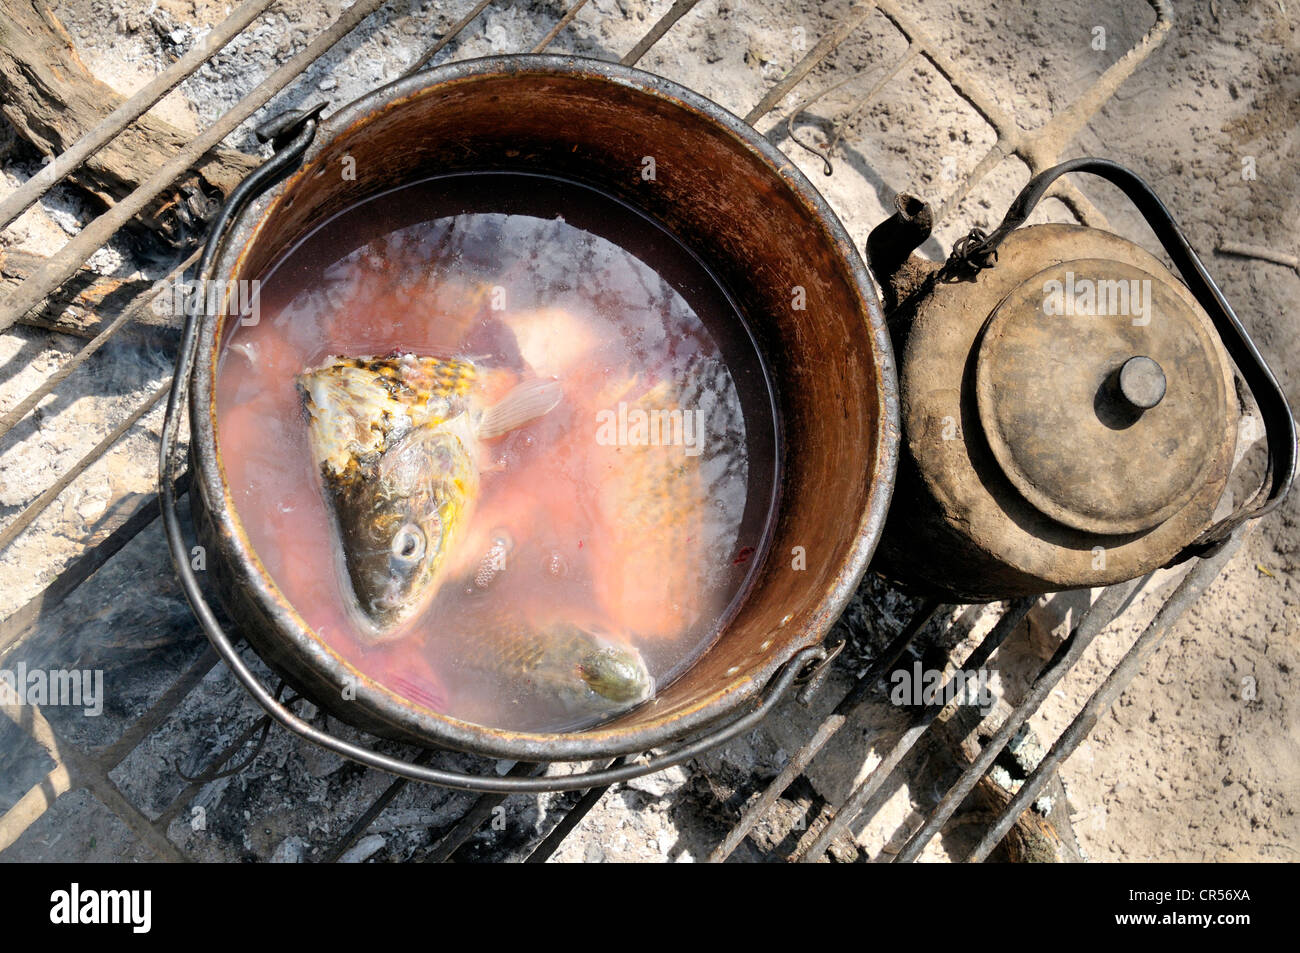 Preparation of fish soup on an open fire, indigenous community of La Curvita, in the language of the Wichi Indians: - Stock Image